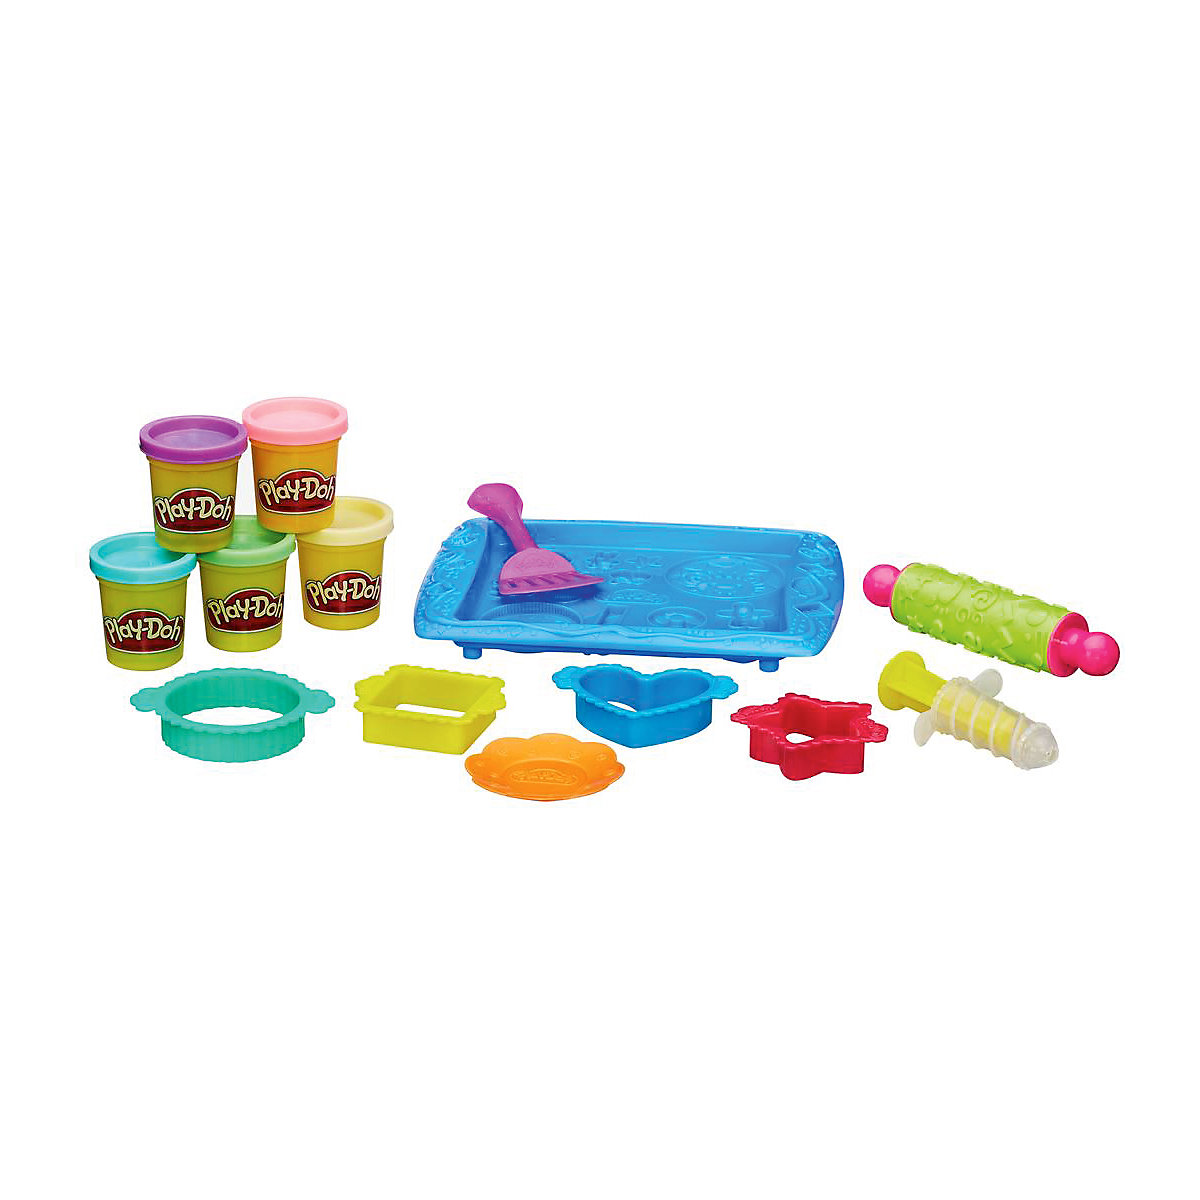 Play-Doh Modeling Clay/Slime 3824995 office plasticine hand gum sculpt kids girl boy girls boys for children play-doh play doh modeling clay slime 8606530 office plasticine hand gum sculpt kids girl boy girls boys for children play doh